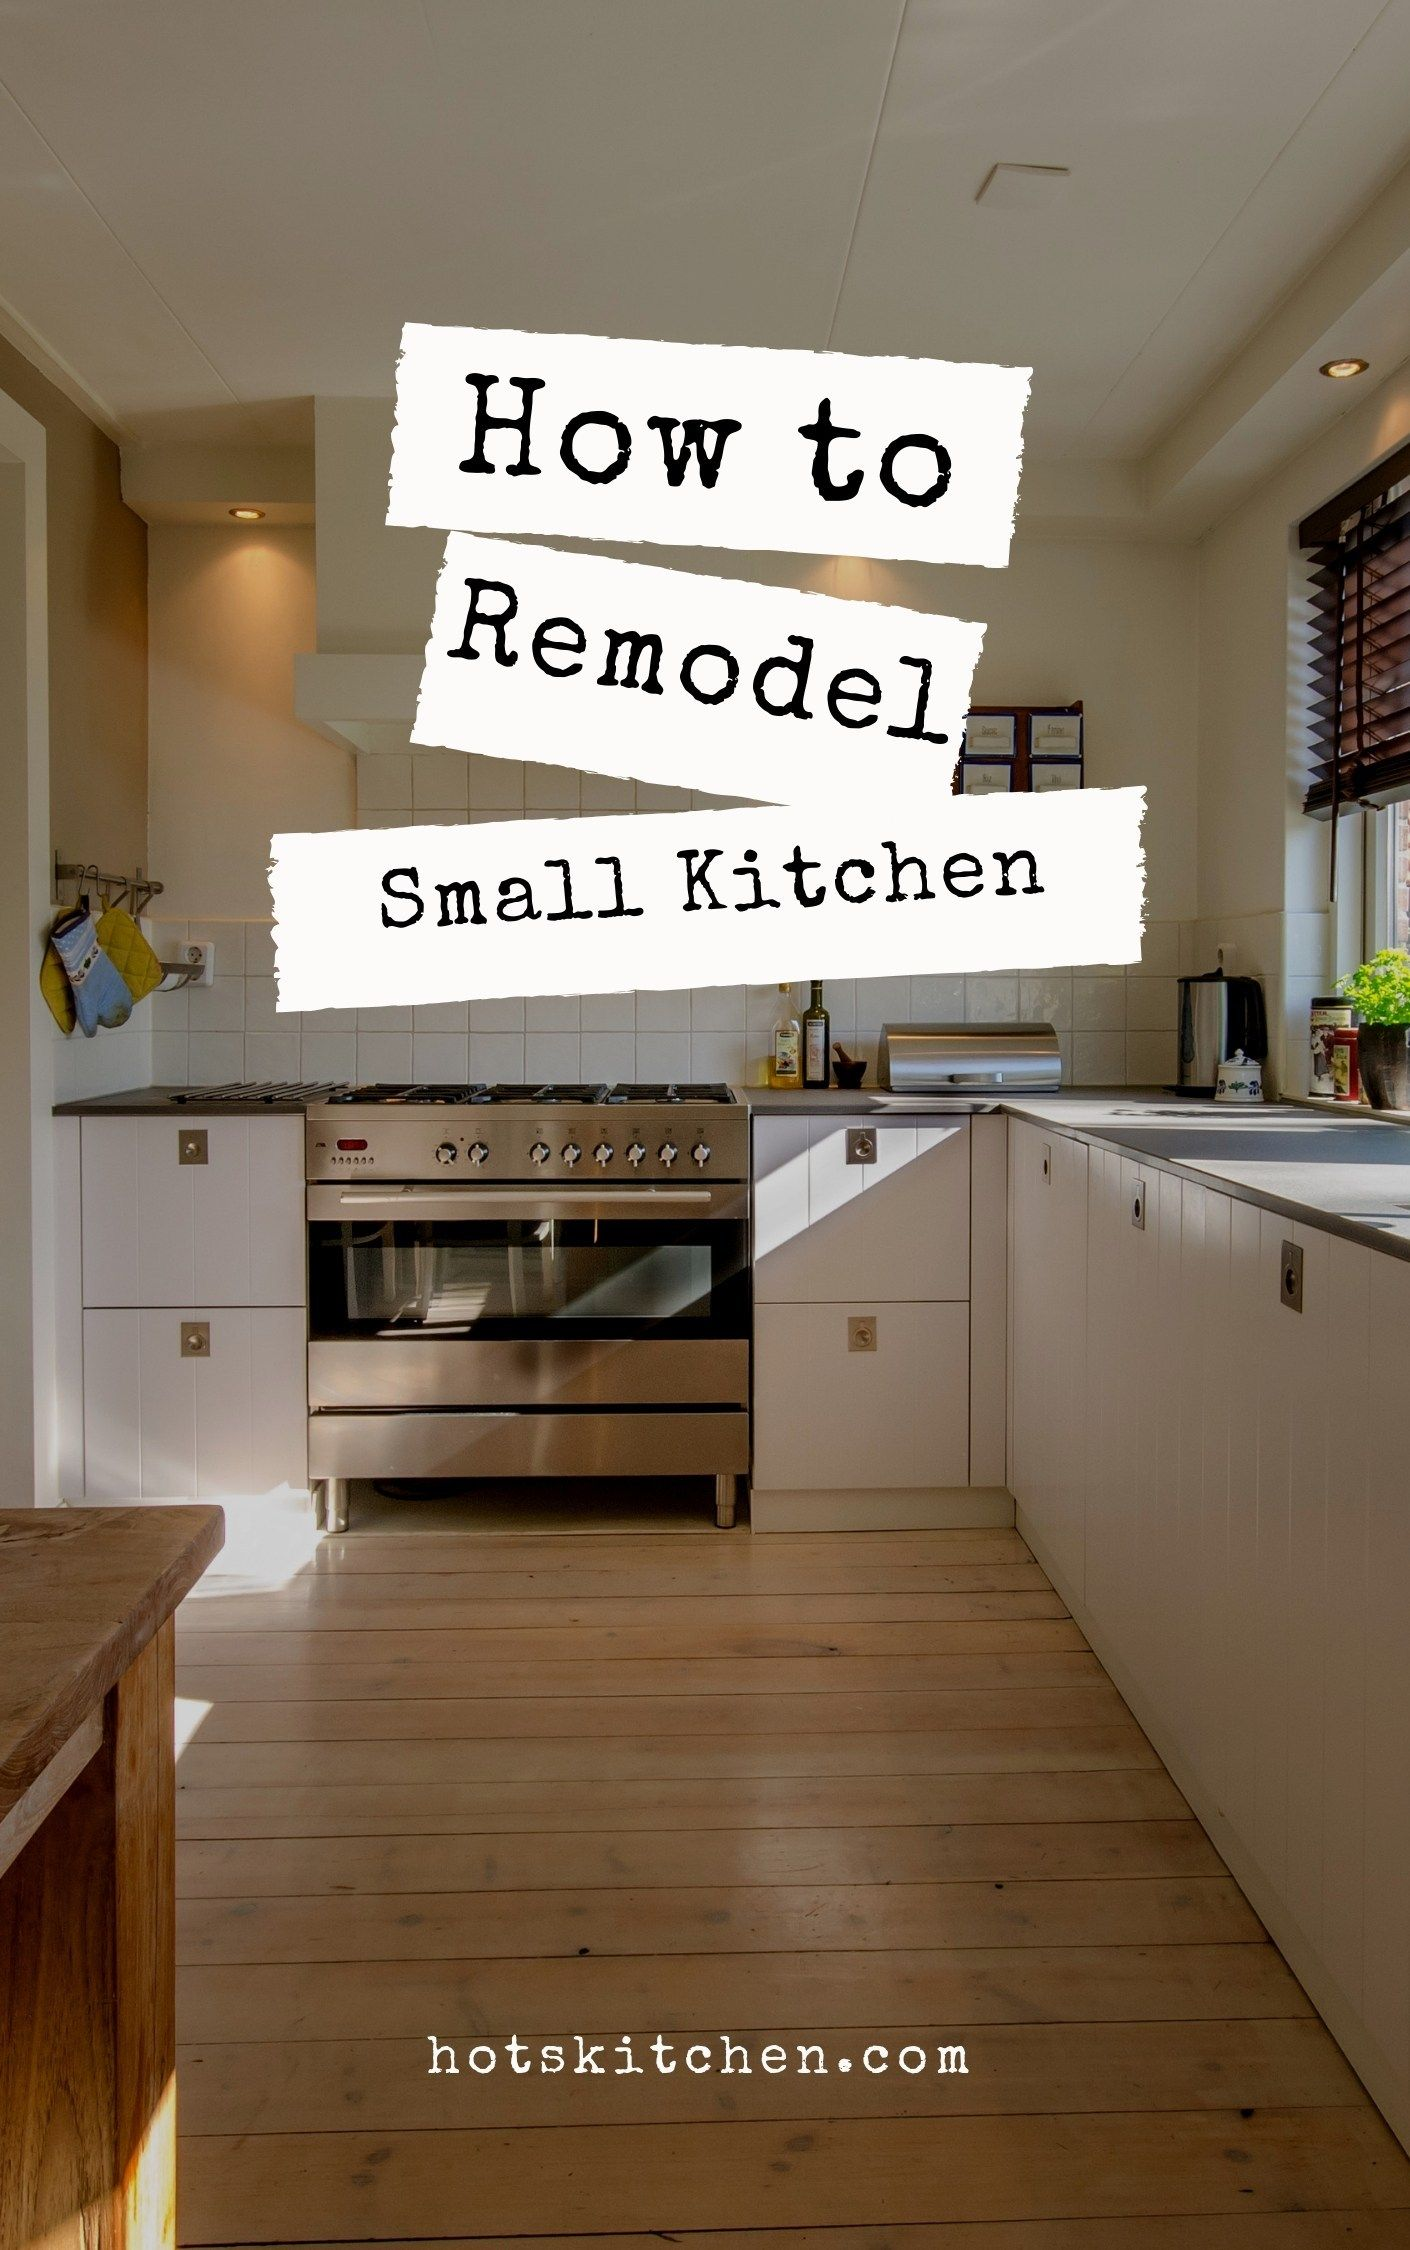 30 Small Kitchen Remodel Ideas Before And After 2019 Trend Hotskitchen Kitchen Remodel Small Small Kitchen Renovations Simple Kitchen Design